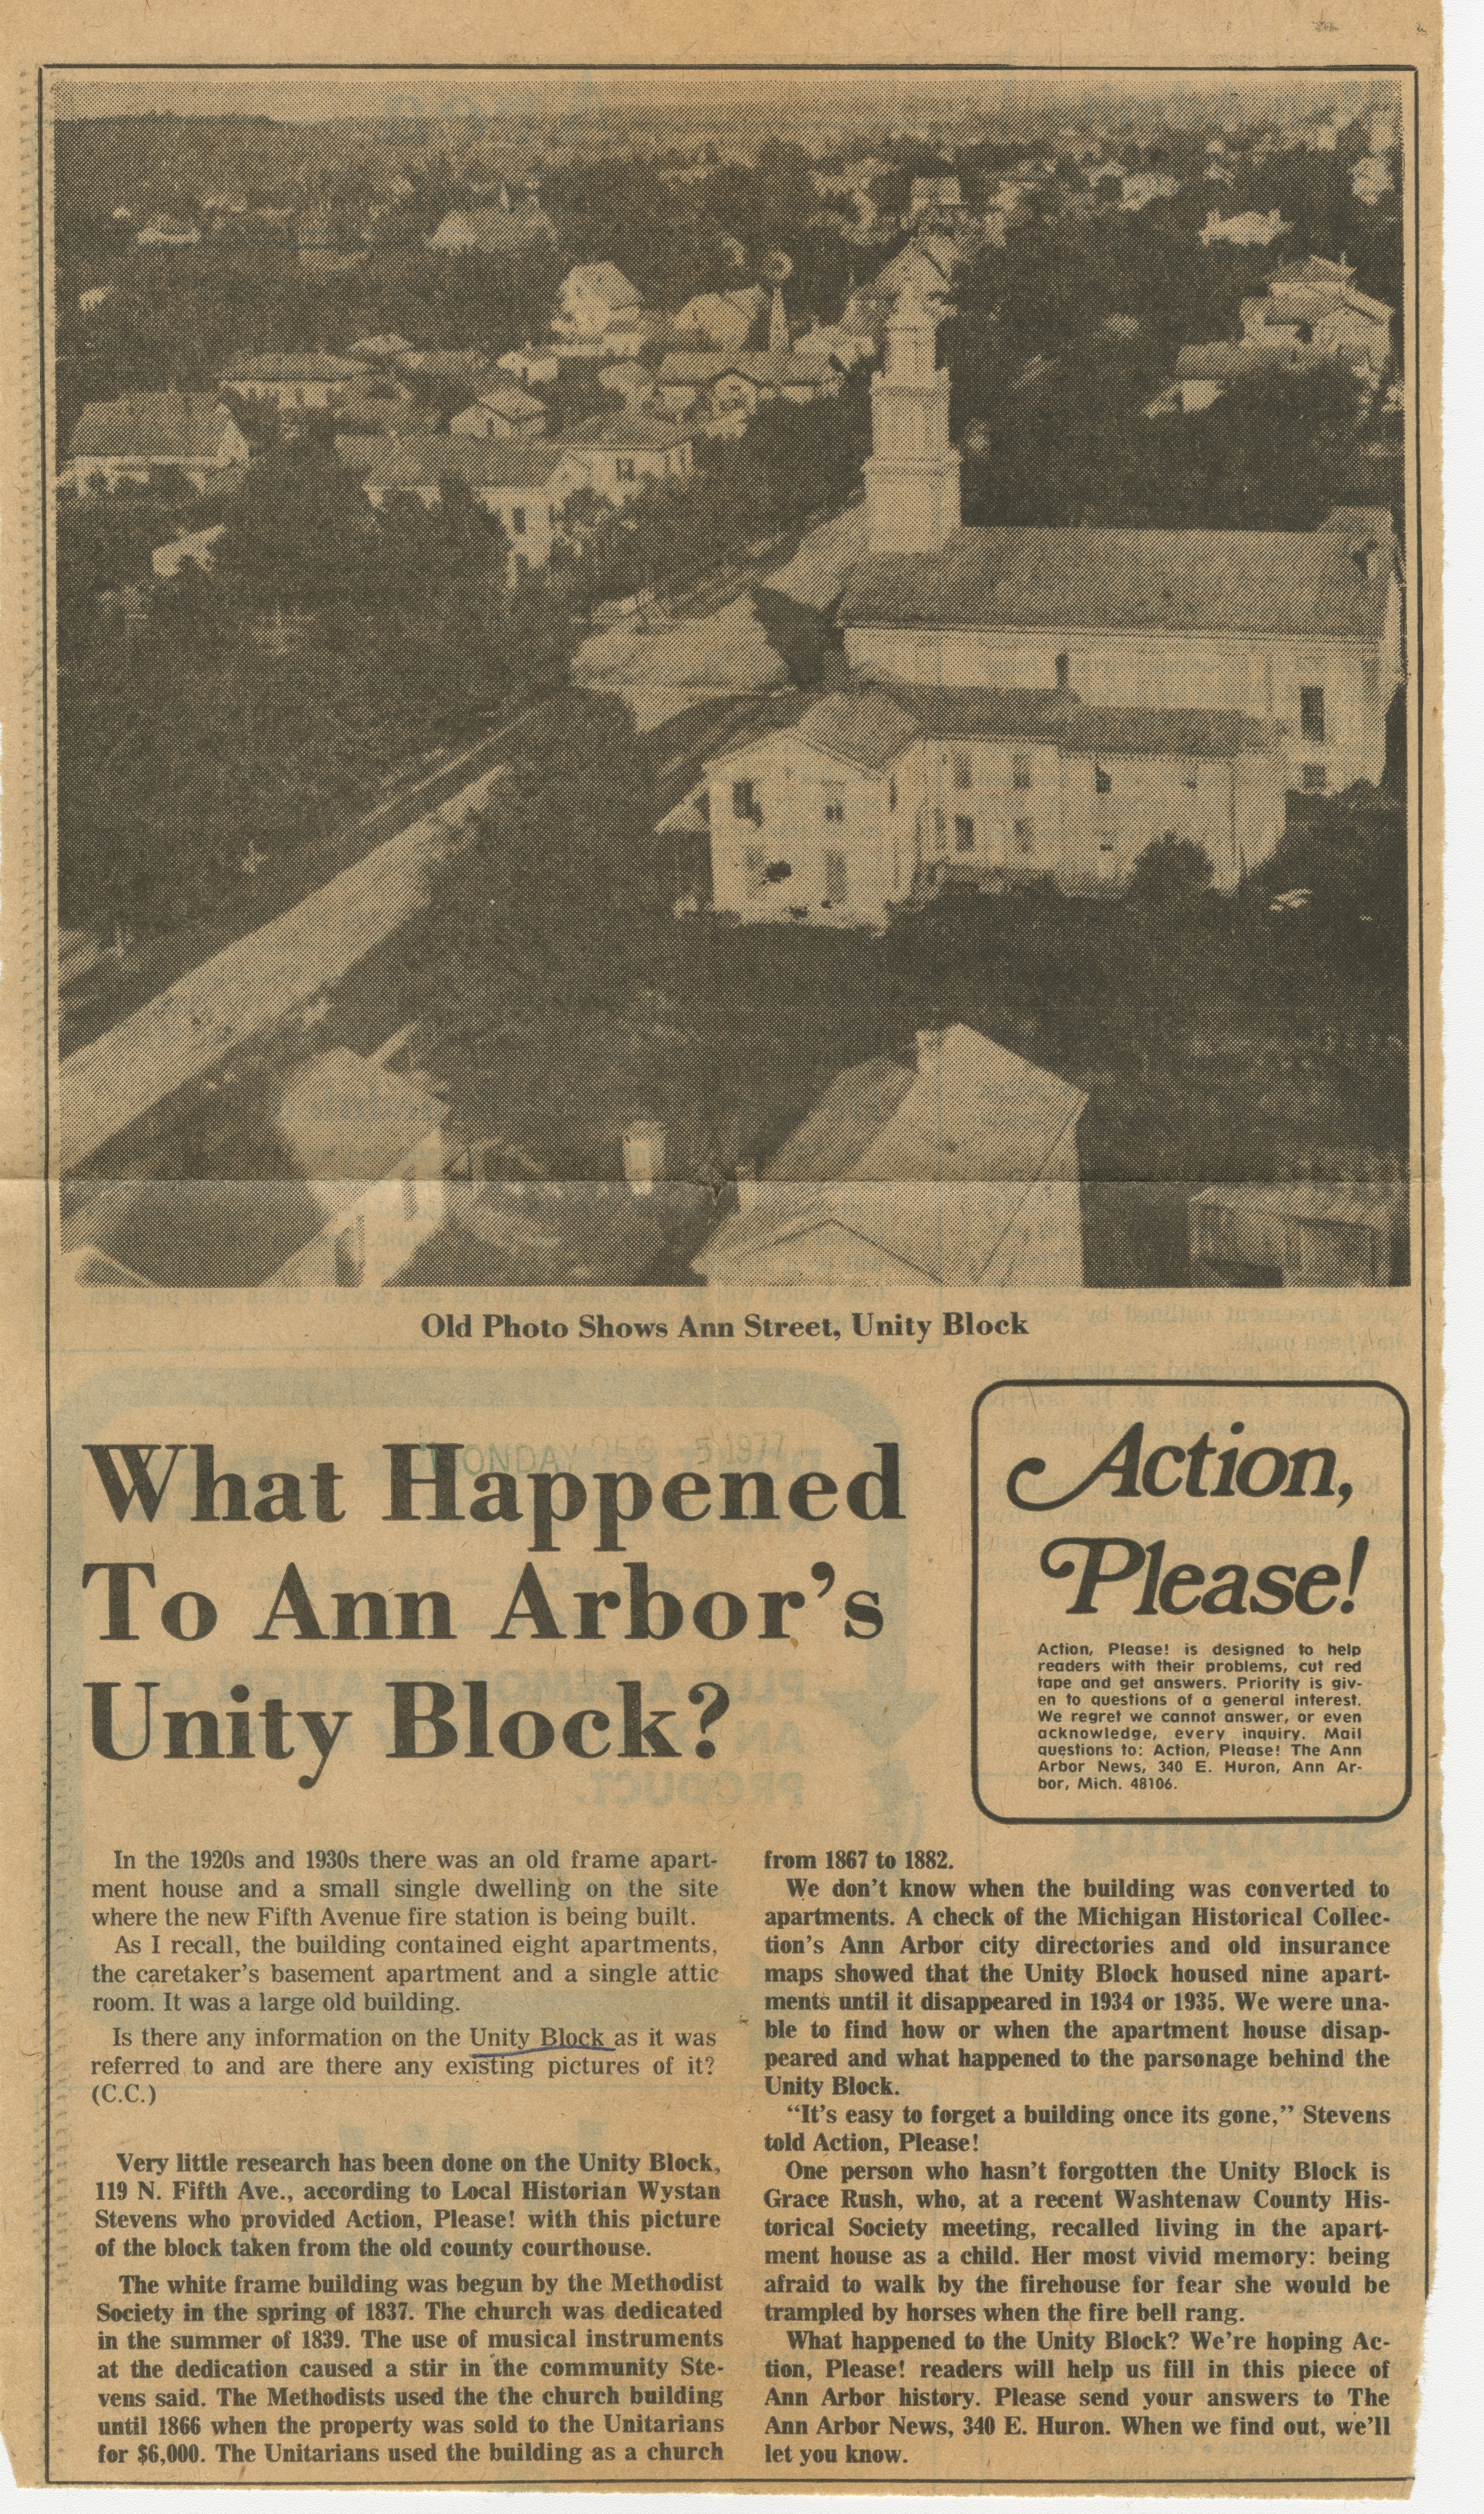 What Happened To Ann Arbor's Unity Block? image